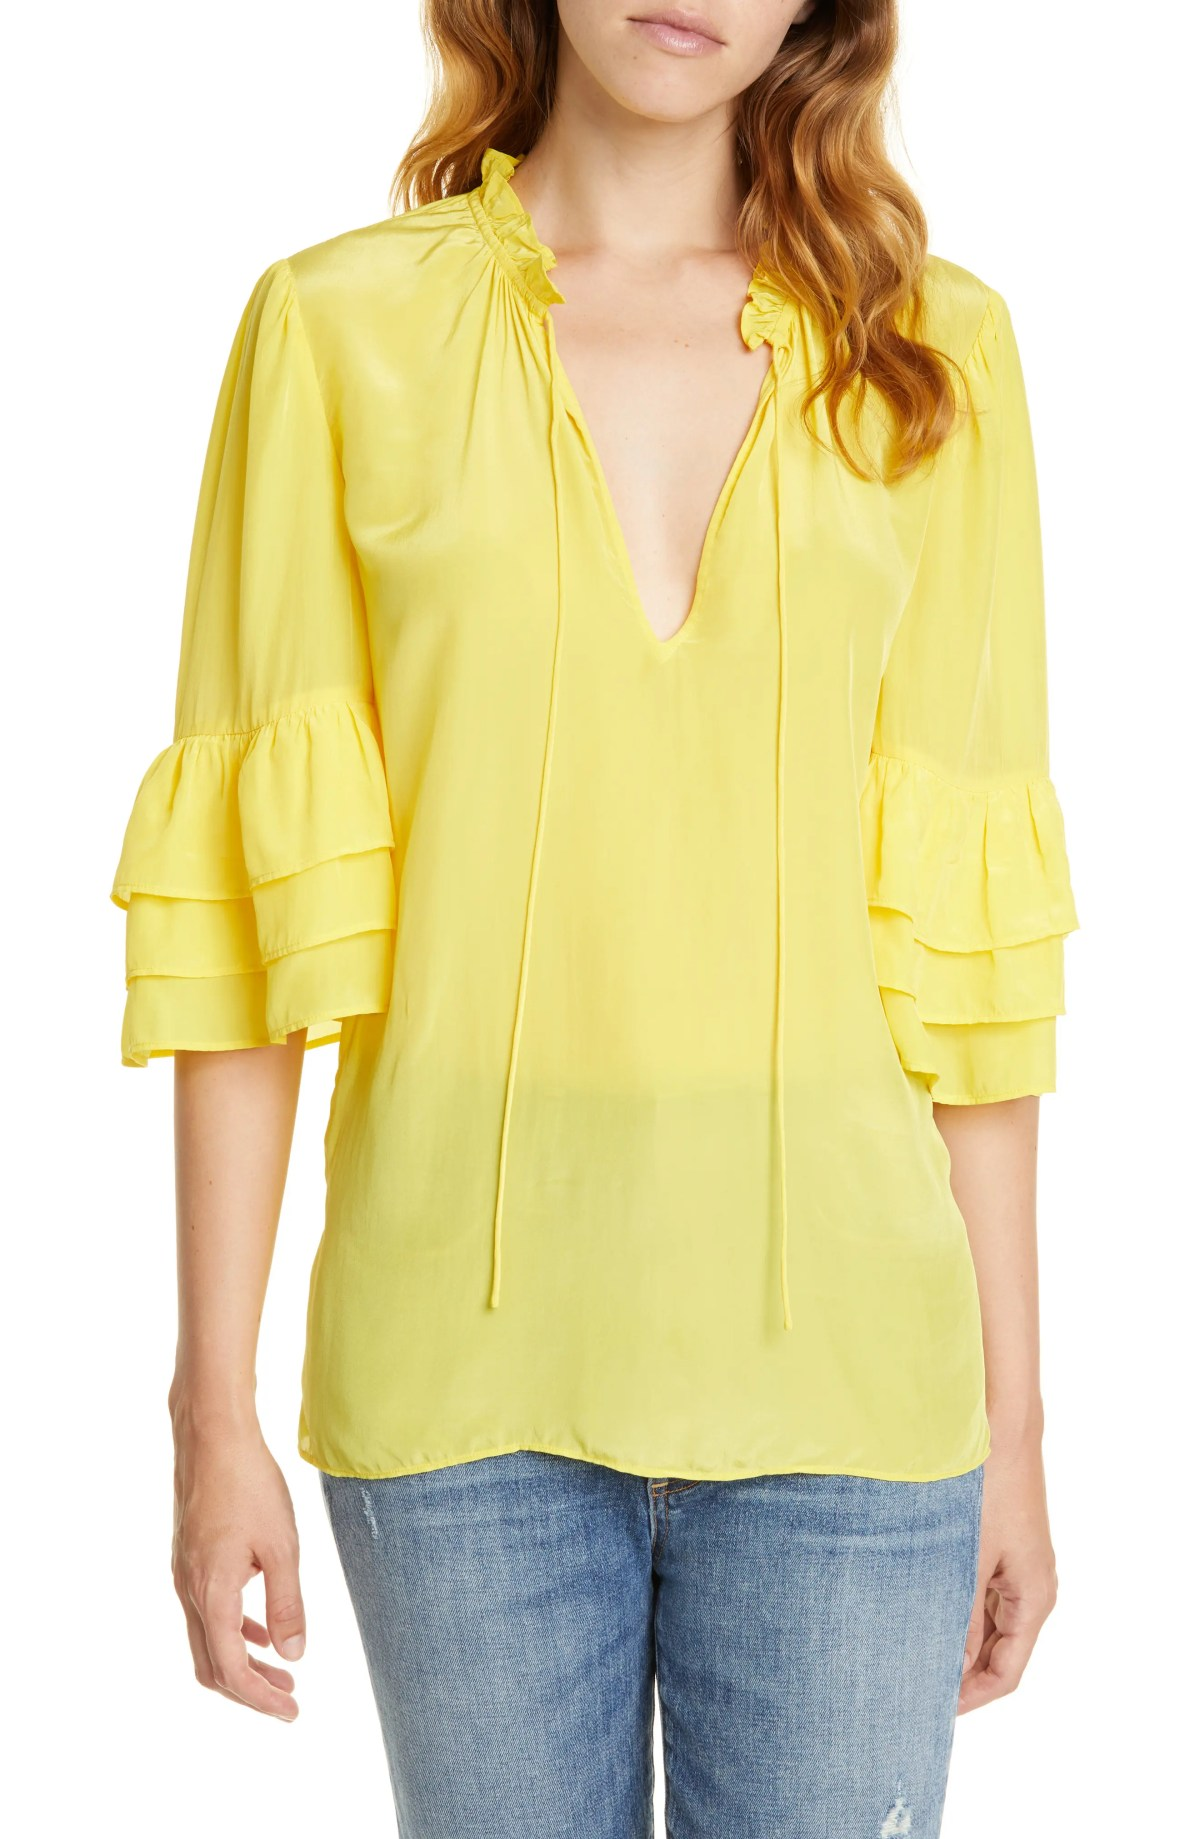 ALICE + OLIVIA Julius Tier Sleeve Tunic, Main, color, CITRUS